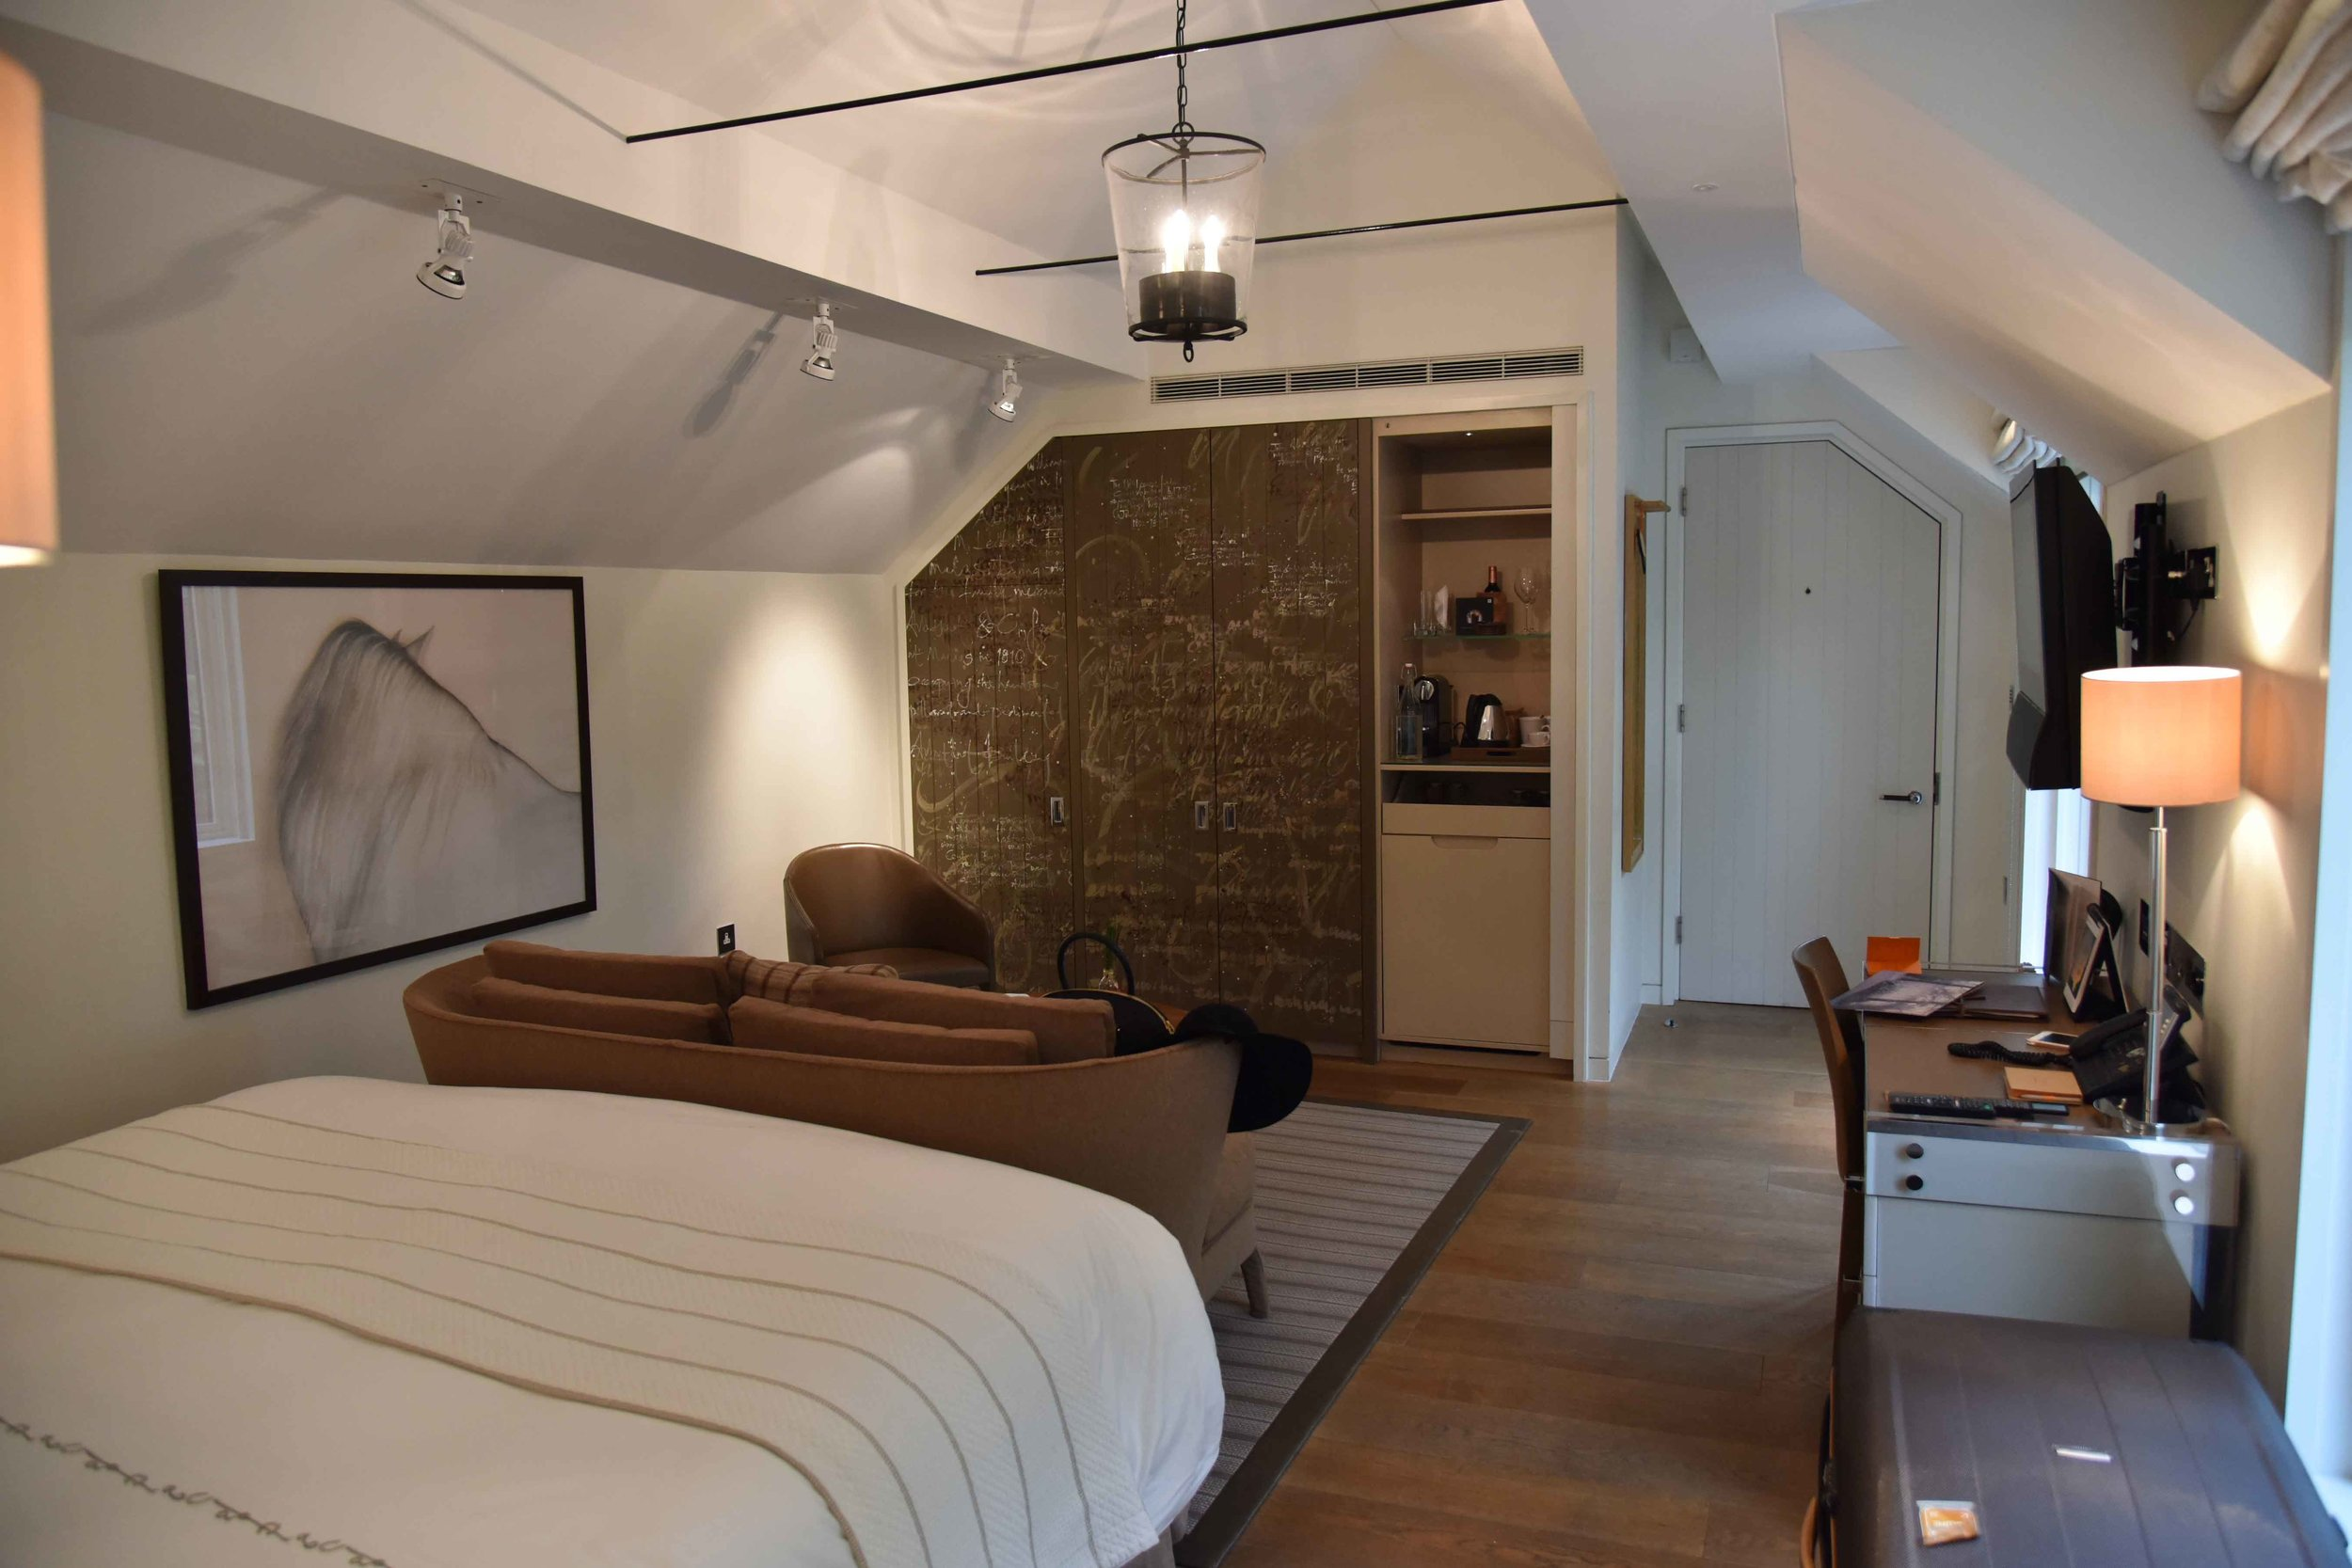 Stable Deluxe Rooms, Coworth Park Hotel & Spa, Ascot, UK. Image©thingstodot.com